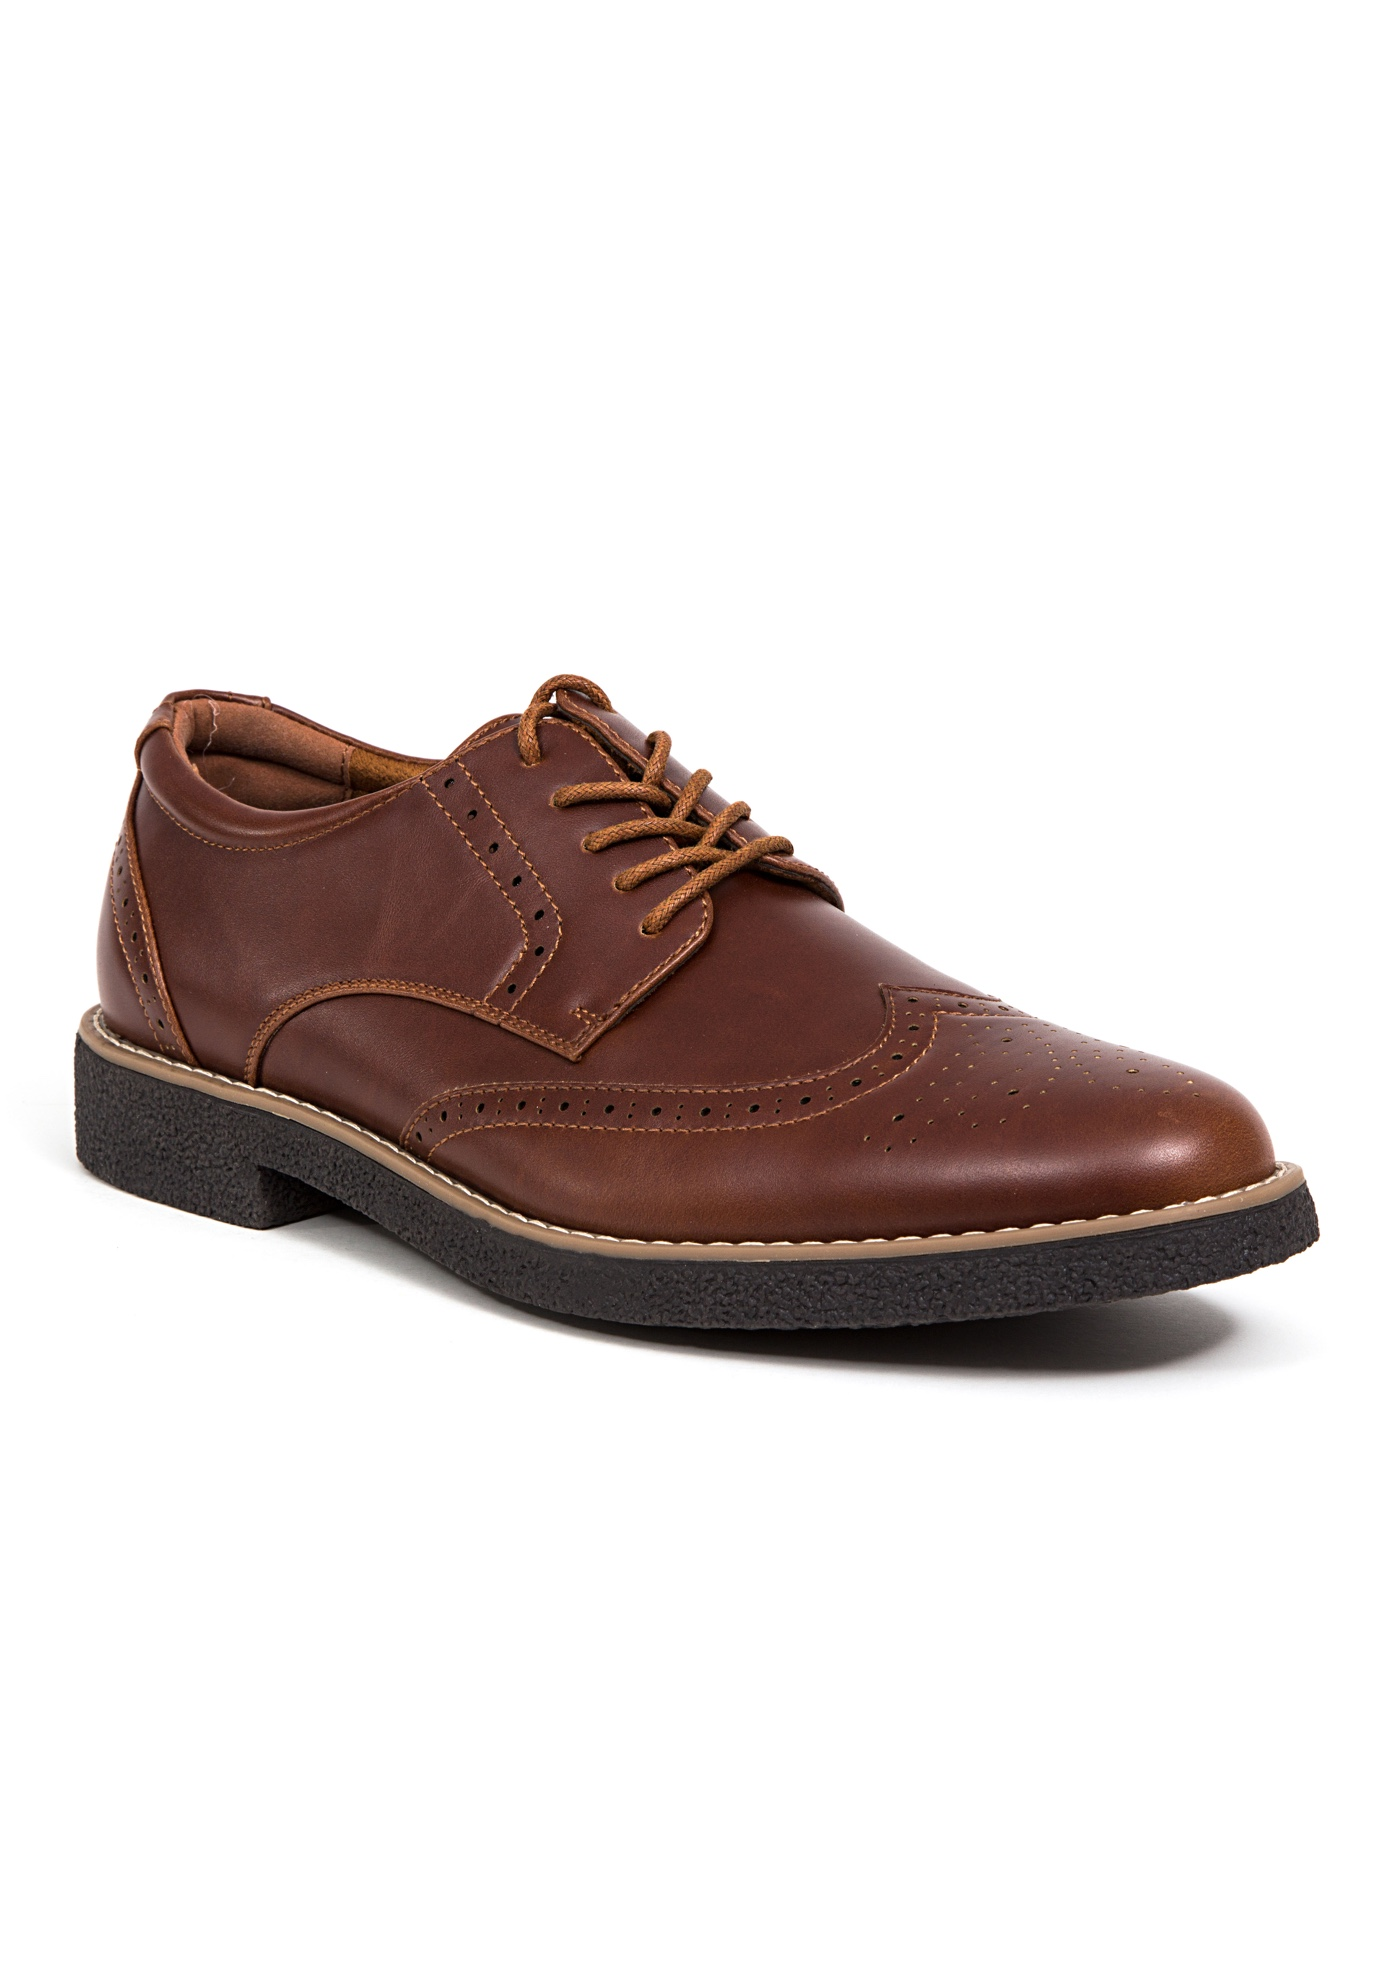 Deer Stags® Creston Comfort Wingtip Oxford Shoes with Memory Foam,